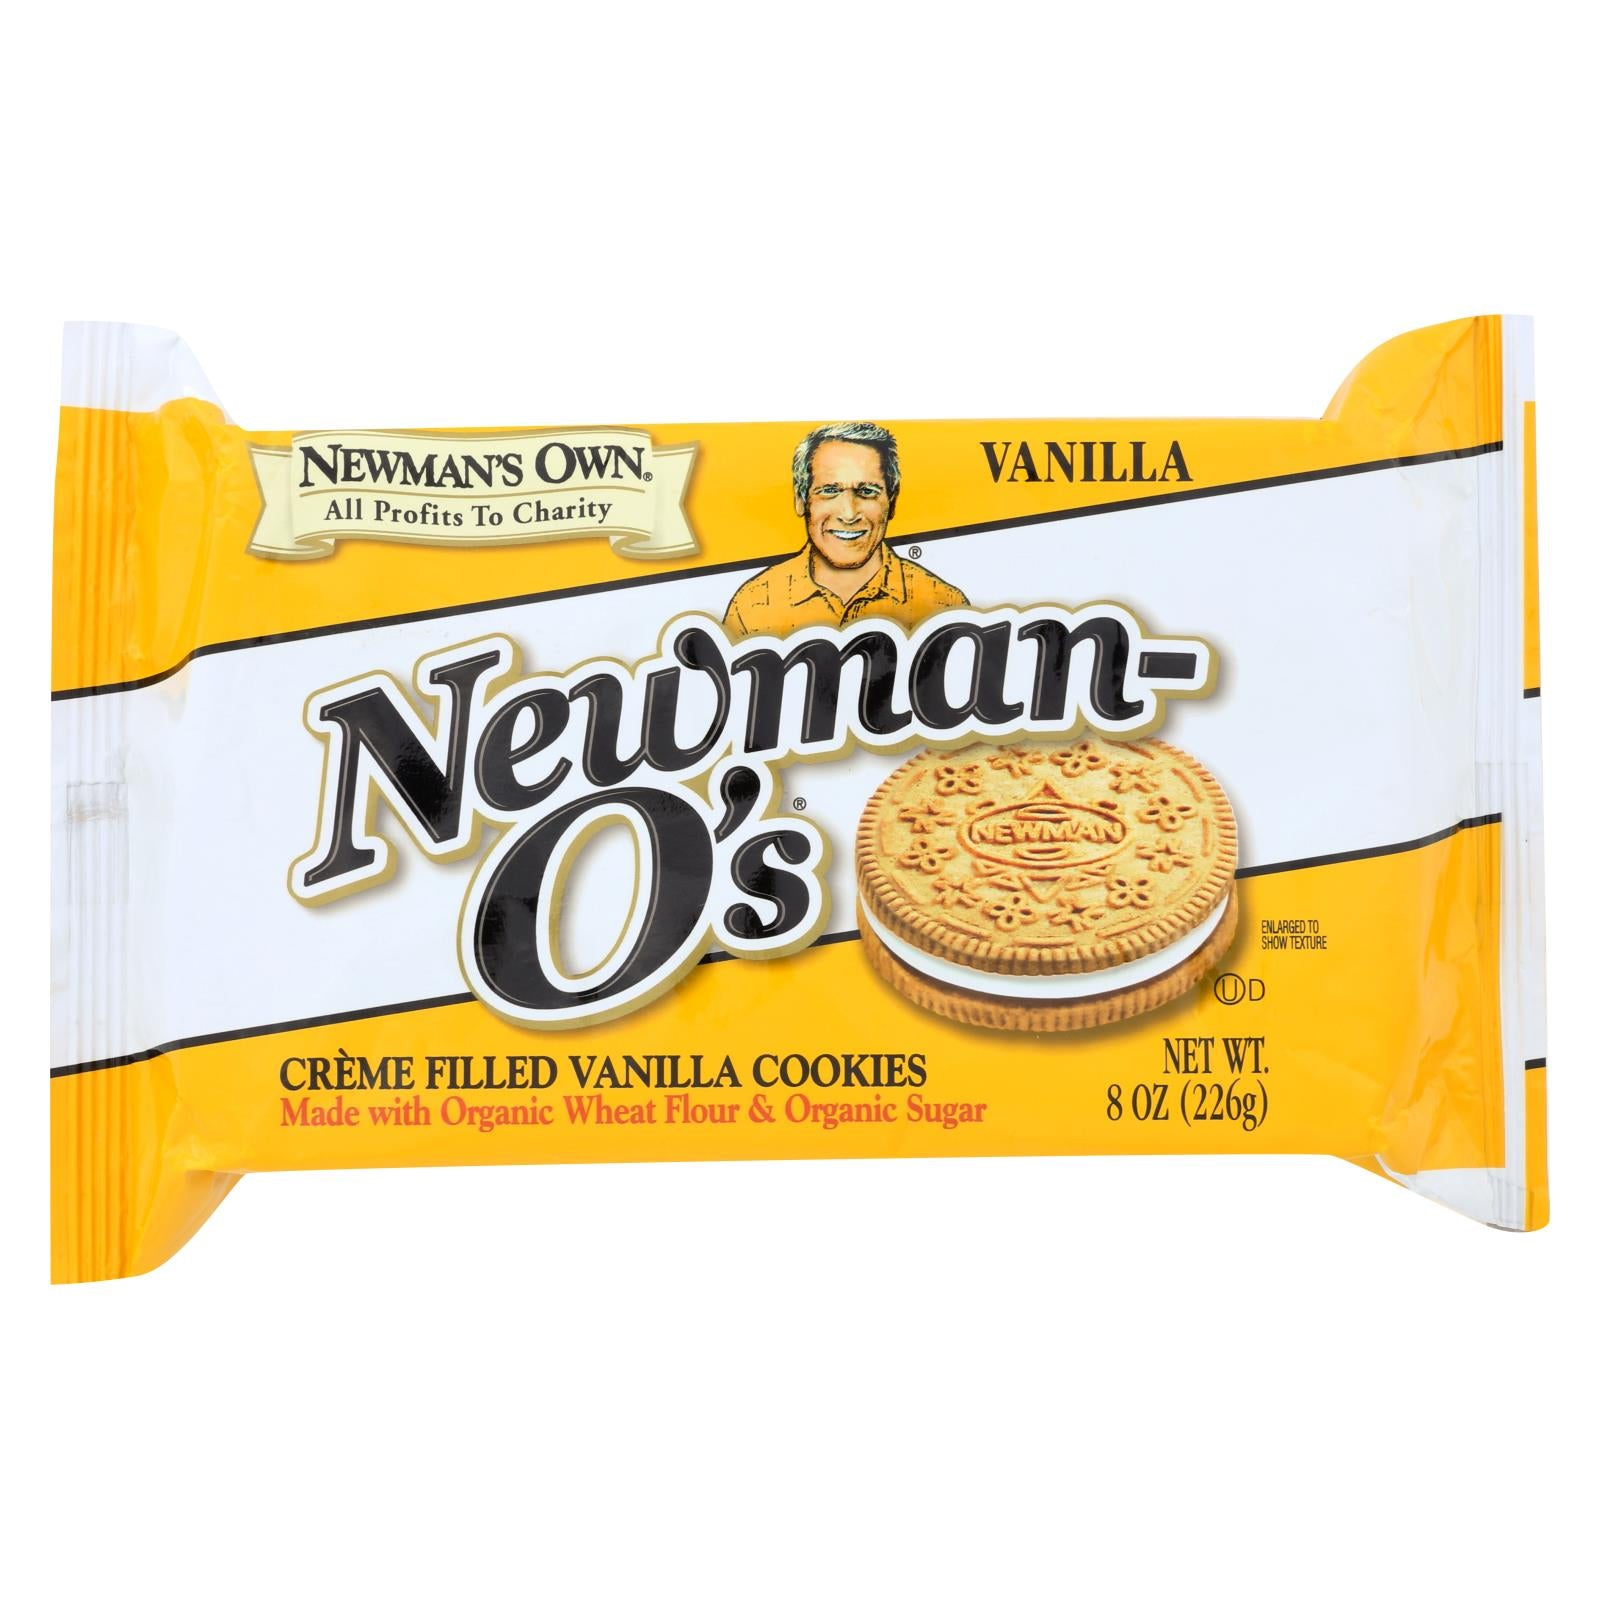 Newman's Own Organics Creme Filled Cookies - Vanilla - Case Of 6 - 8 Oz. HG1193630